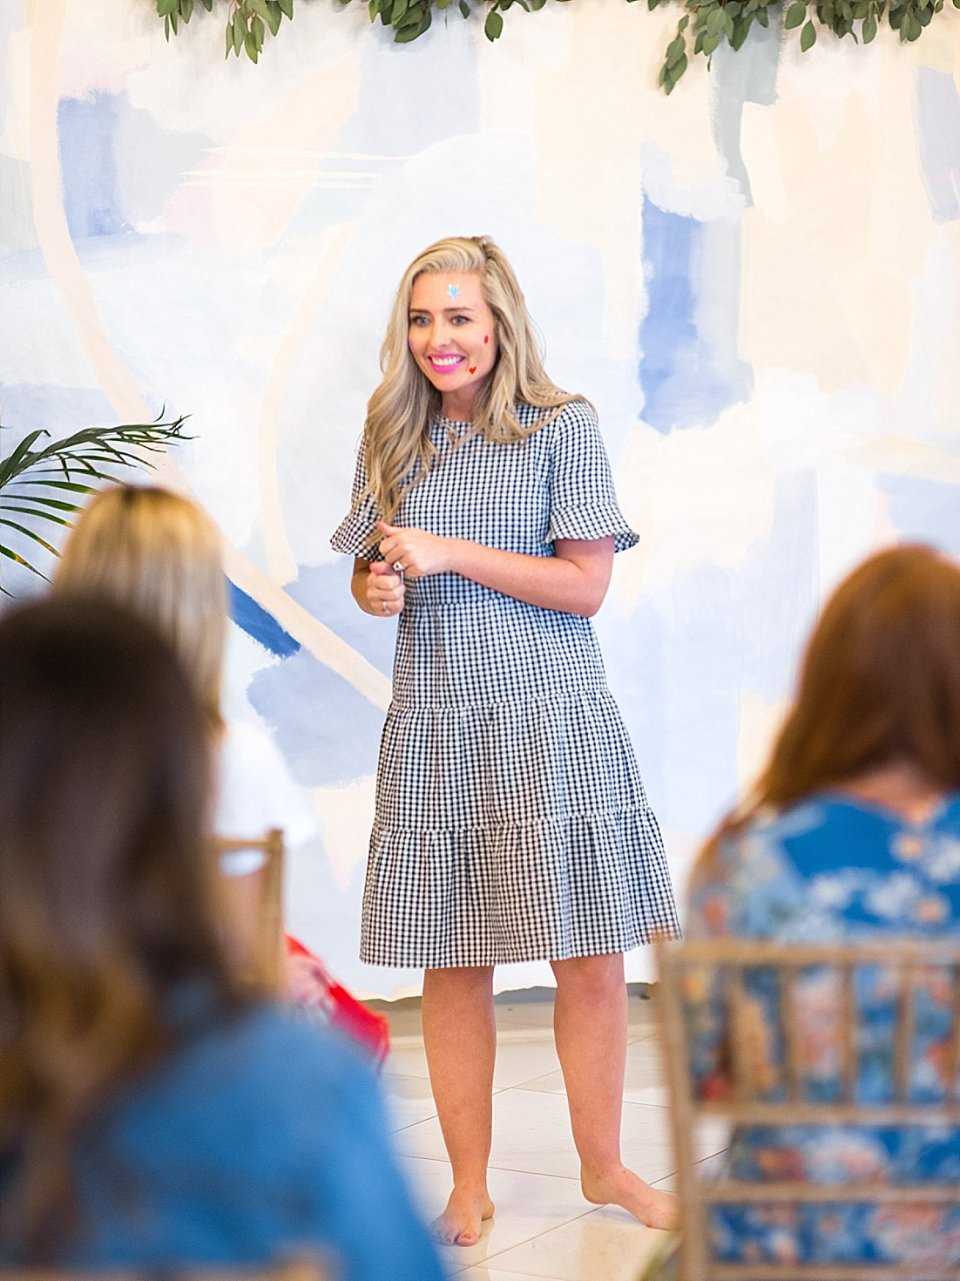 The Joyful Influencer retreat at the kentucky castle Instagram influencer event Ashley Lemieux speaking